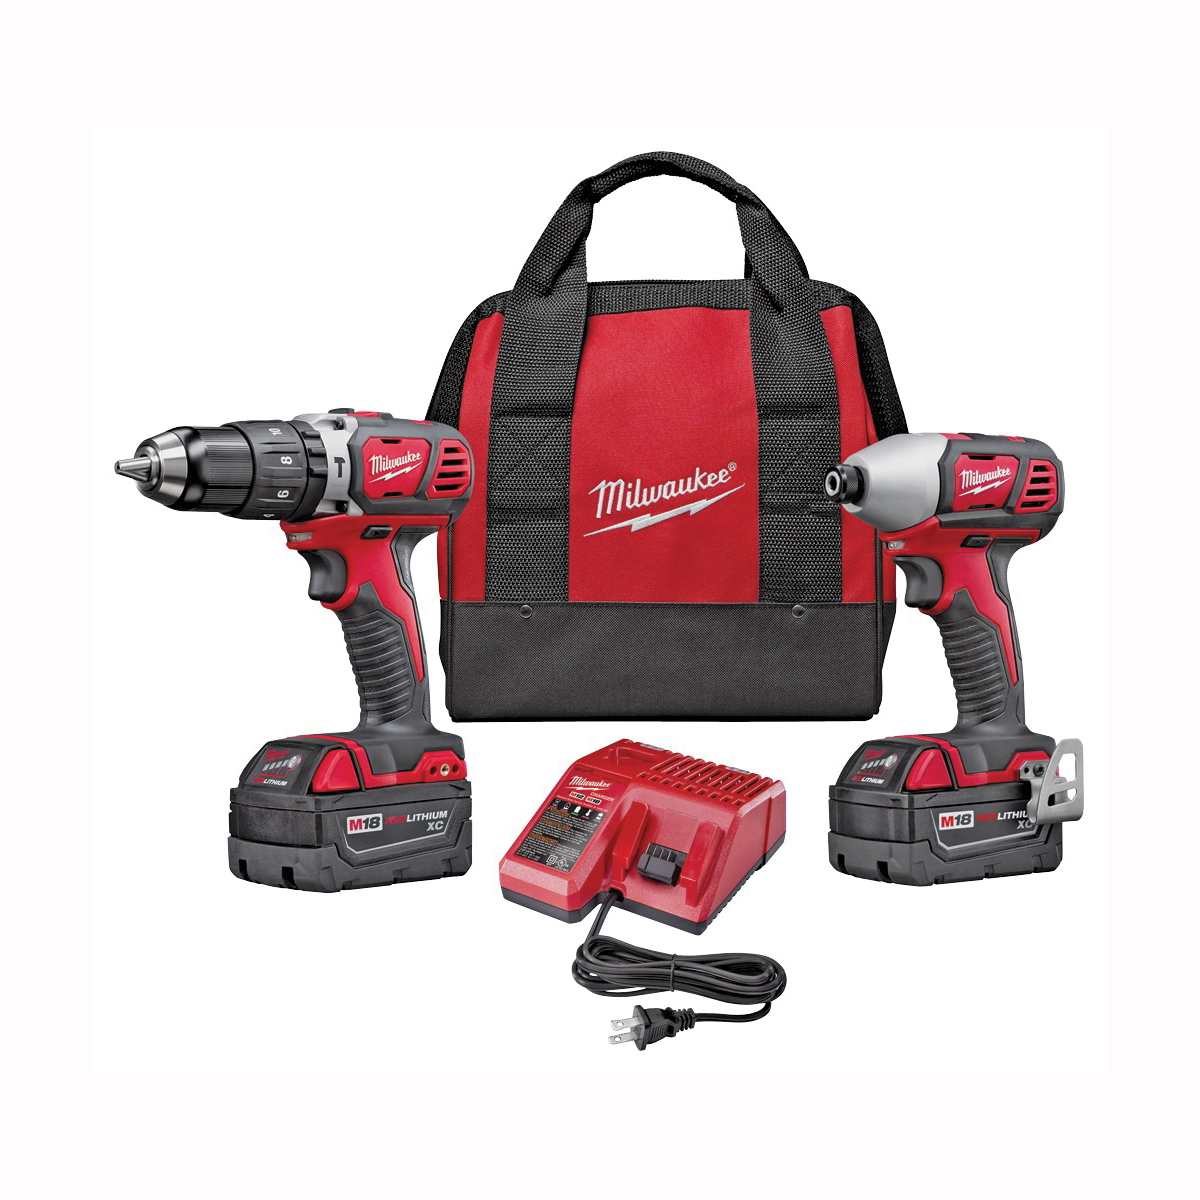 Picture of Milwaukee 2697-22 Two-Tool Combo Kit, Battery Included: Yes